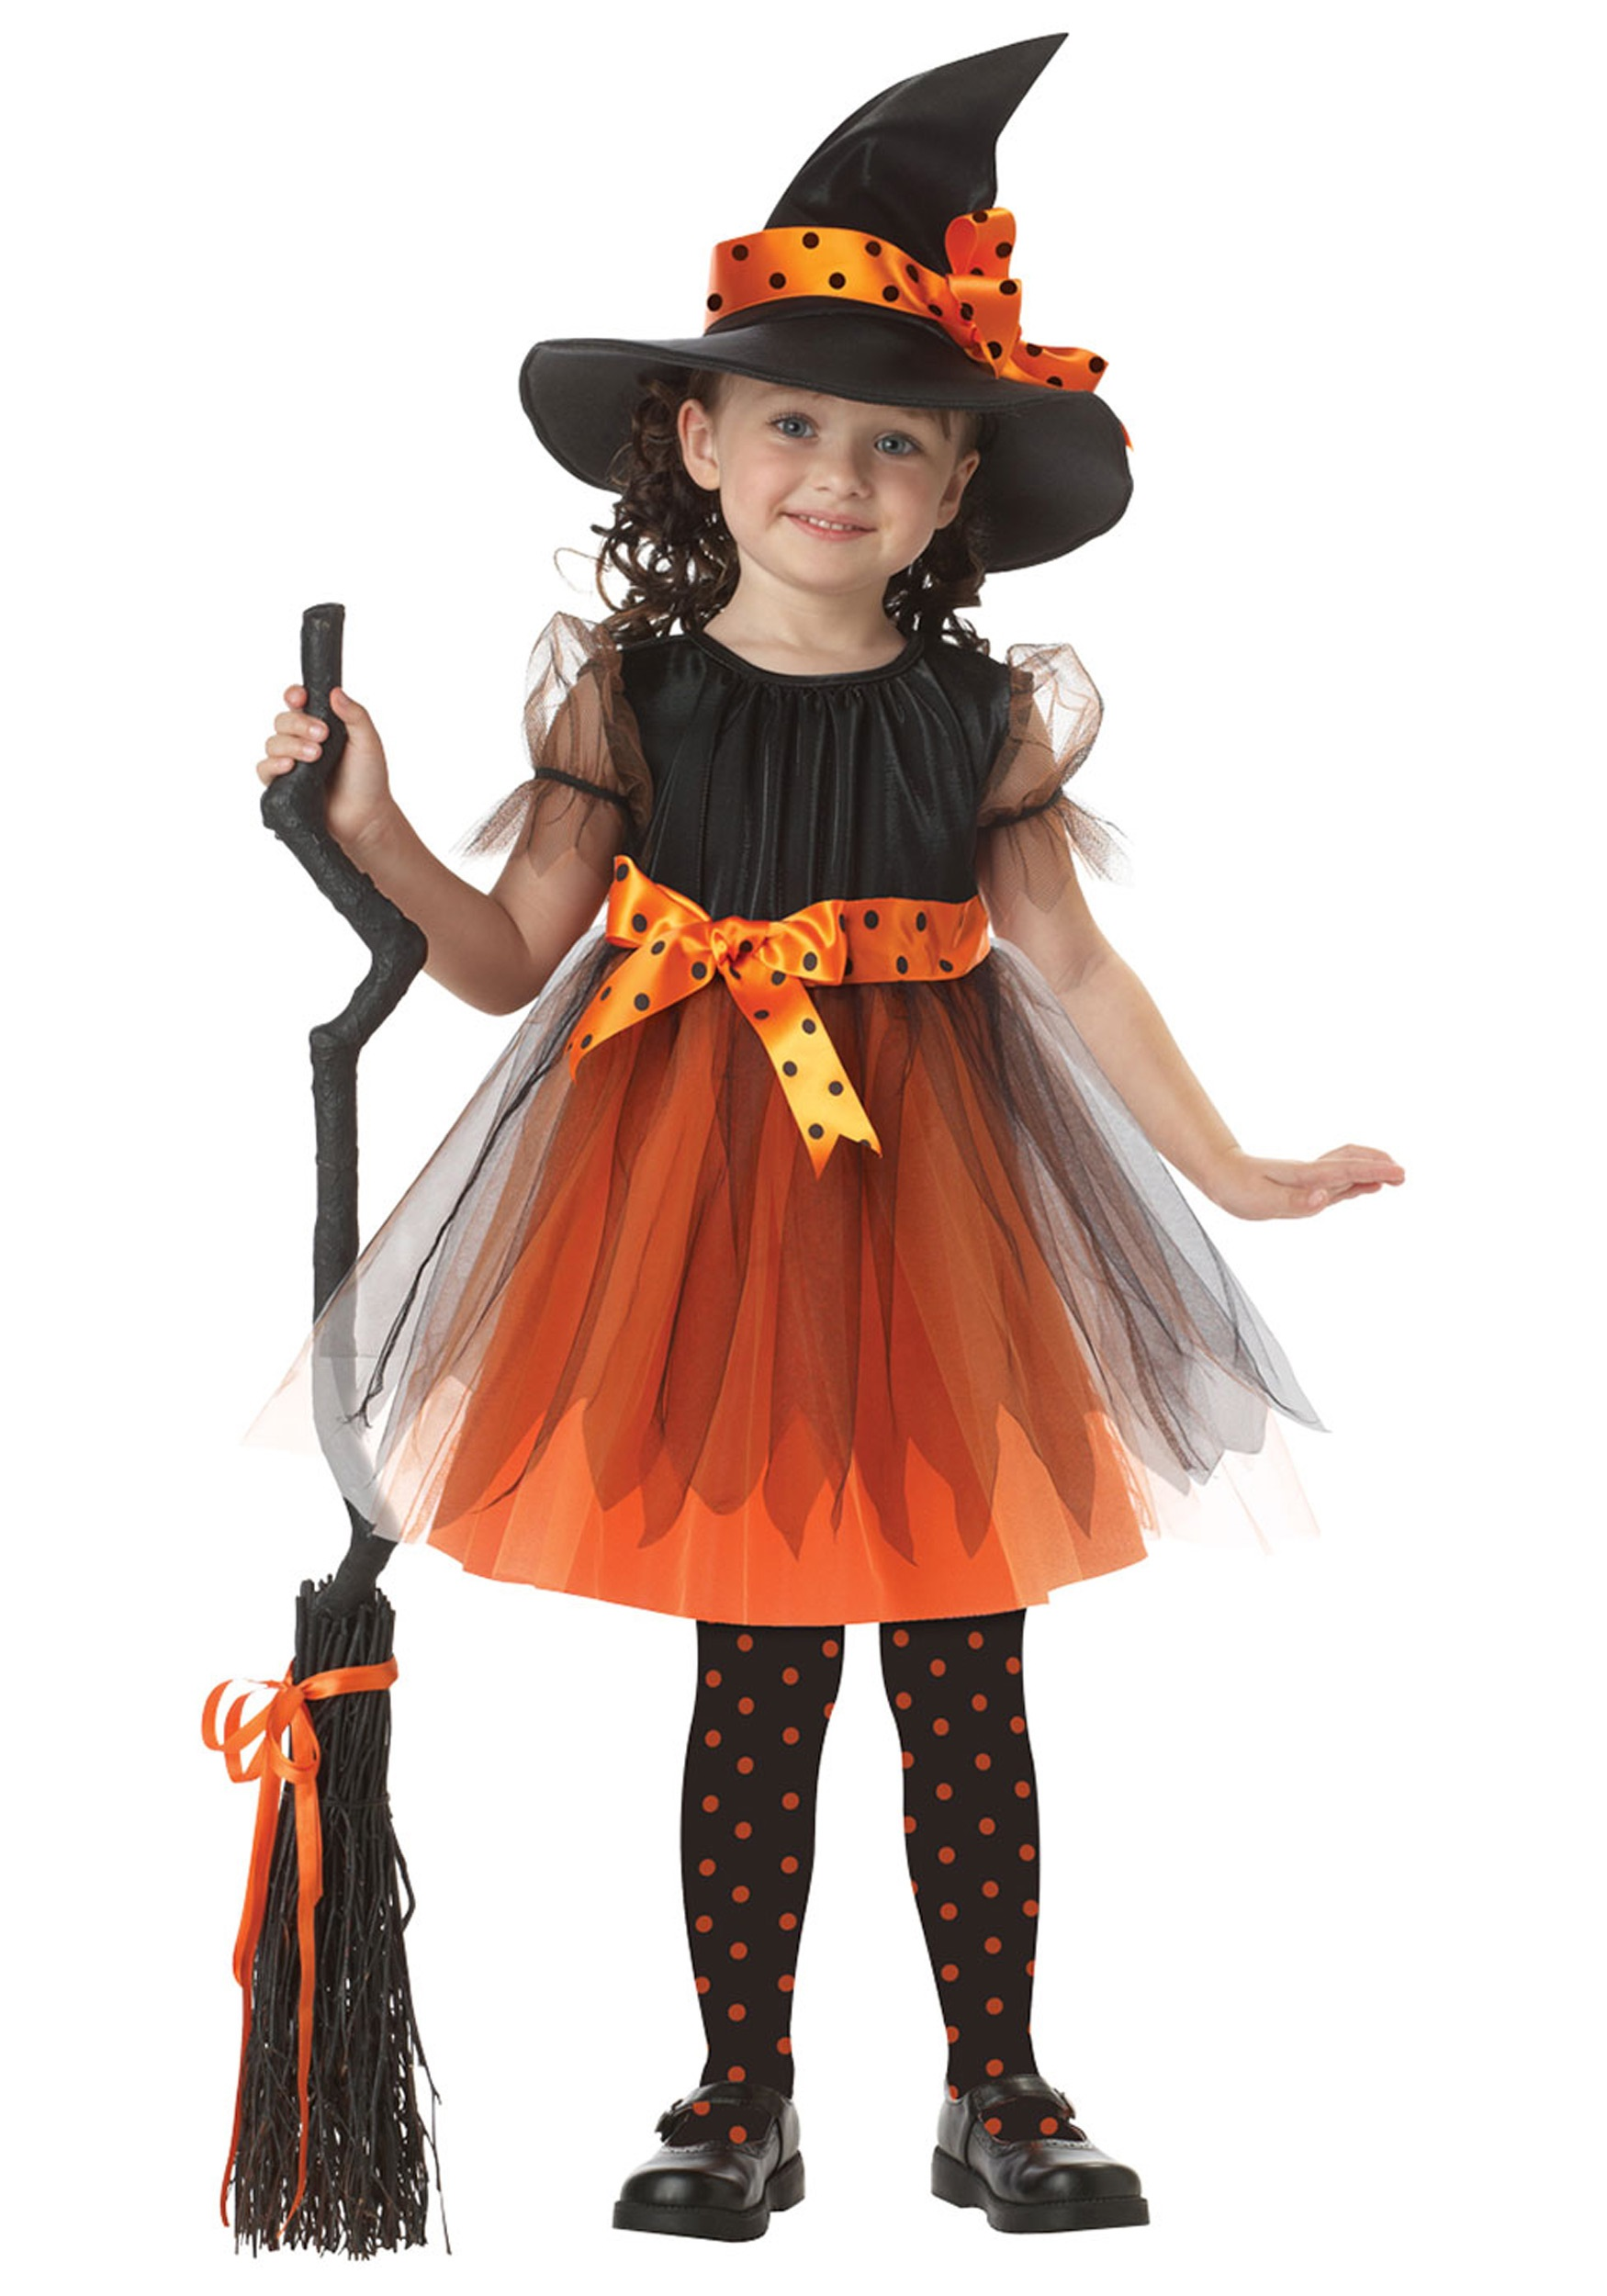 Ck18 Charmed Witch Fancy Dress Up Girls Toddler Kids Book  sc 1 st  Meningrey : play costumes for toddlers  - Germanpascual.Com